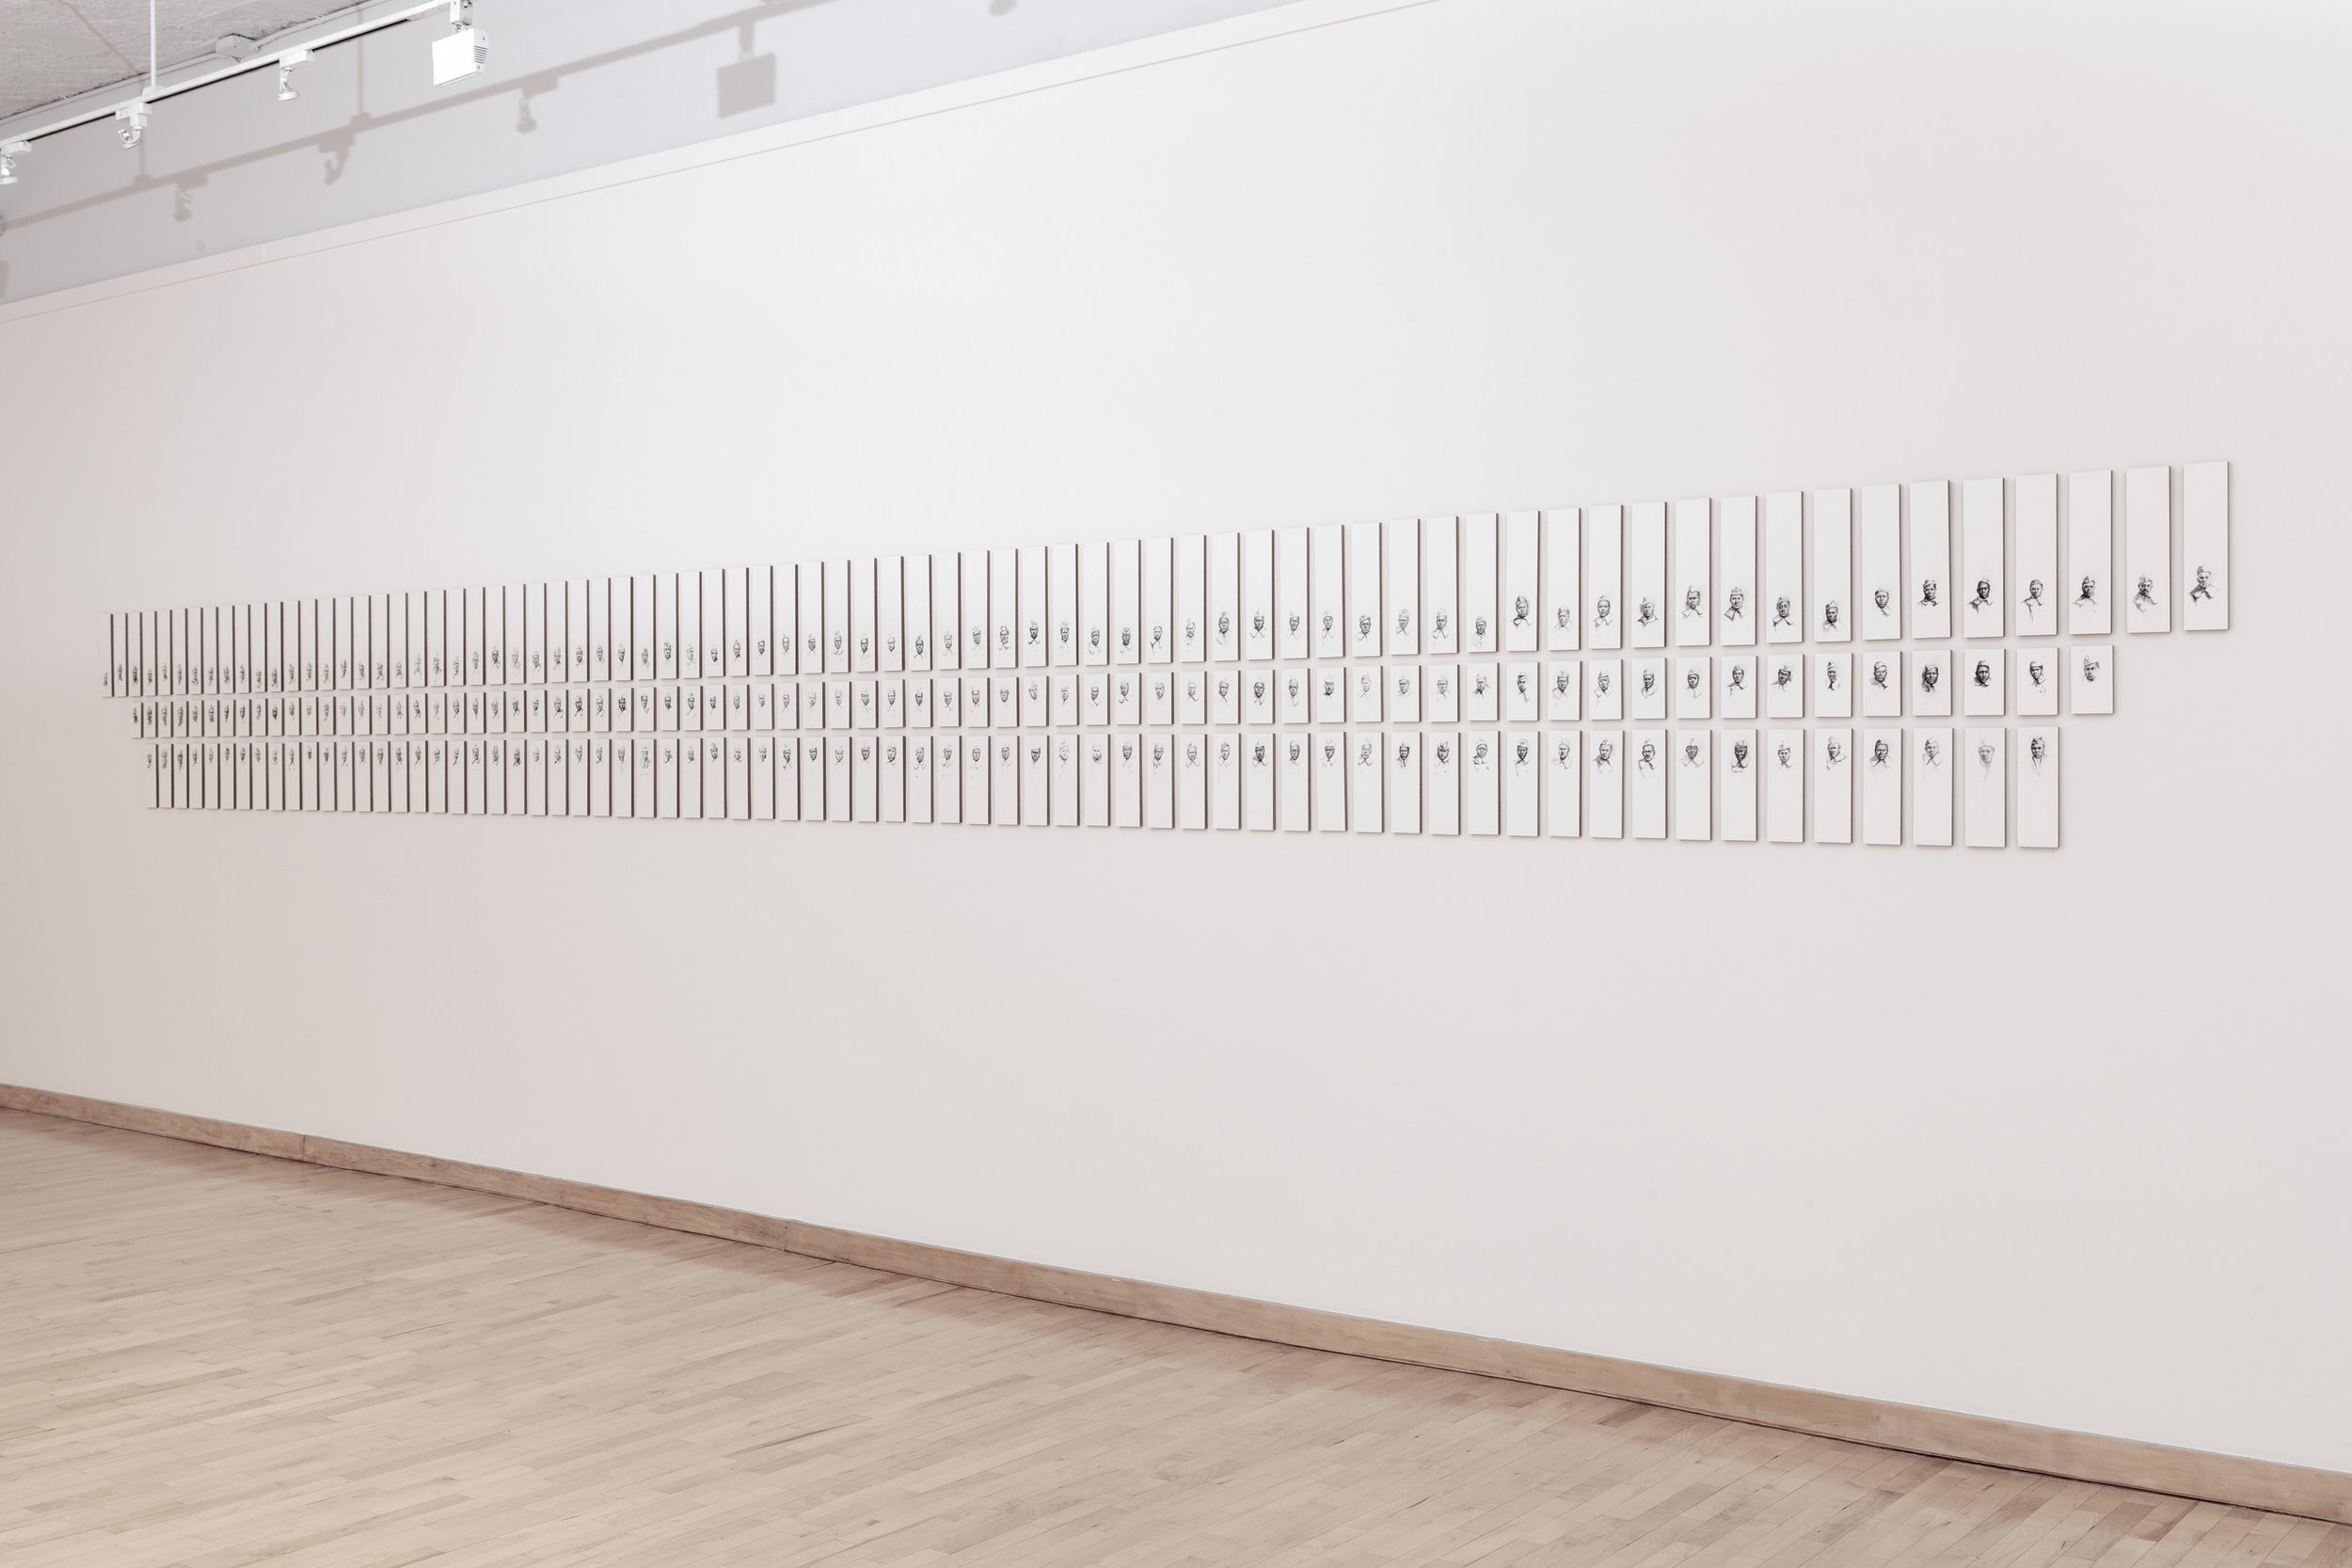 somewhere listening: Company B, 92 Division, 365th Infantry Regiment, A.E.F. 1918 - 1919, 2014  charcoal pencil on arches paper, mounted on board  An installation of 212 panels measuring 28 x 294 inches